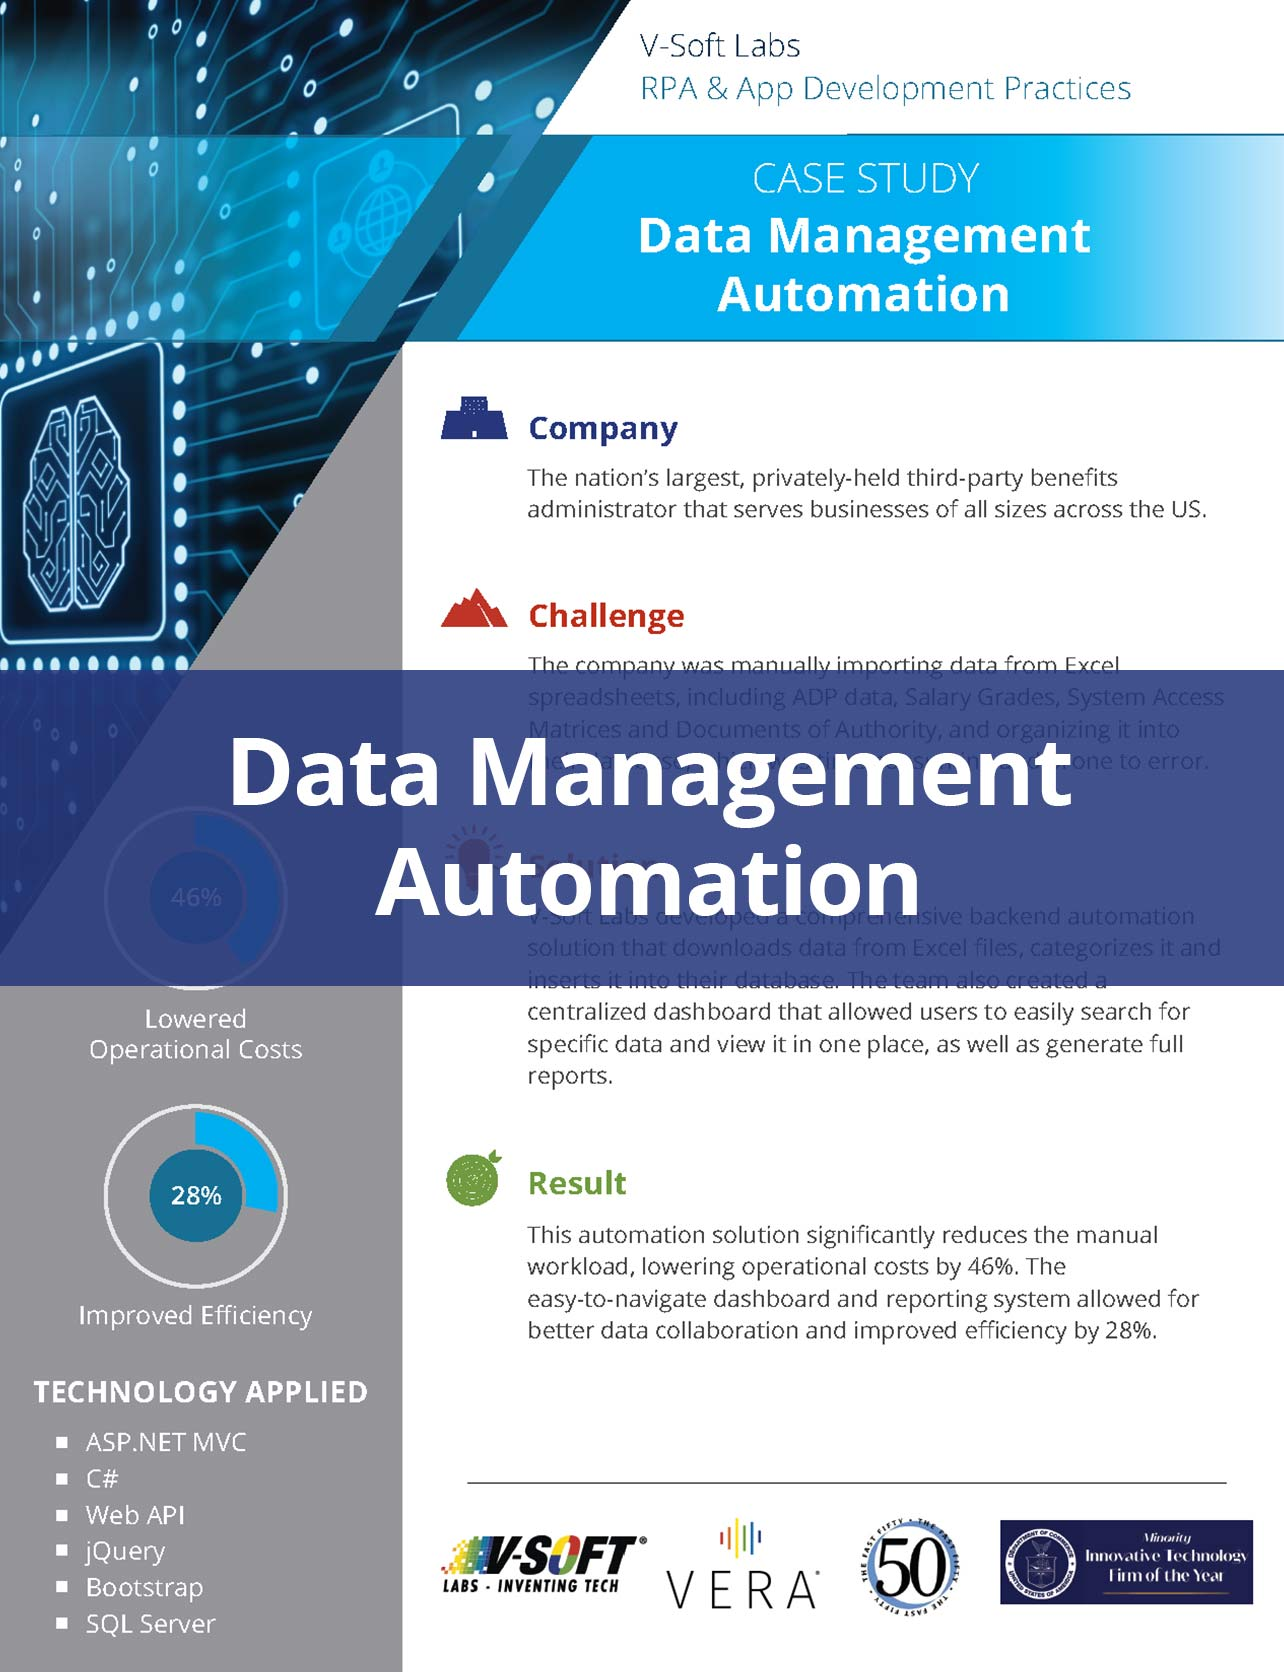 Data Management Automation